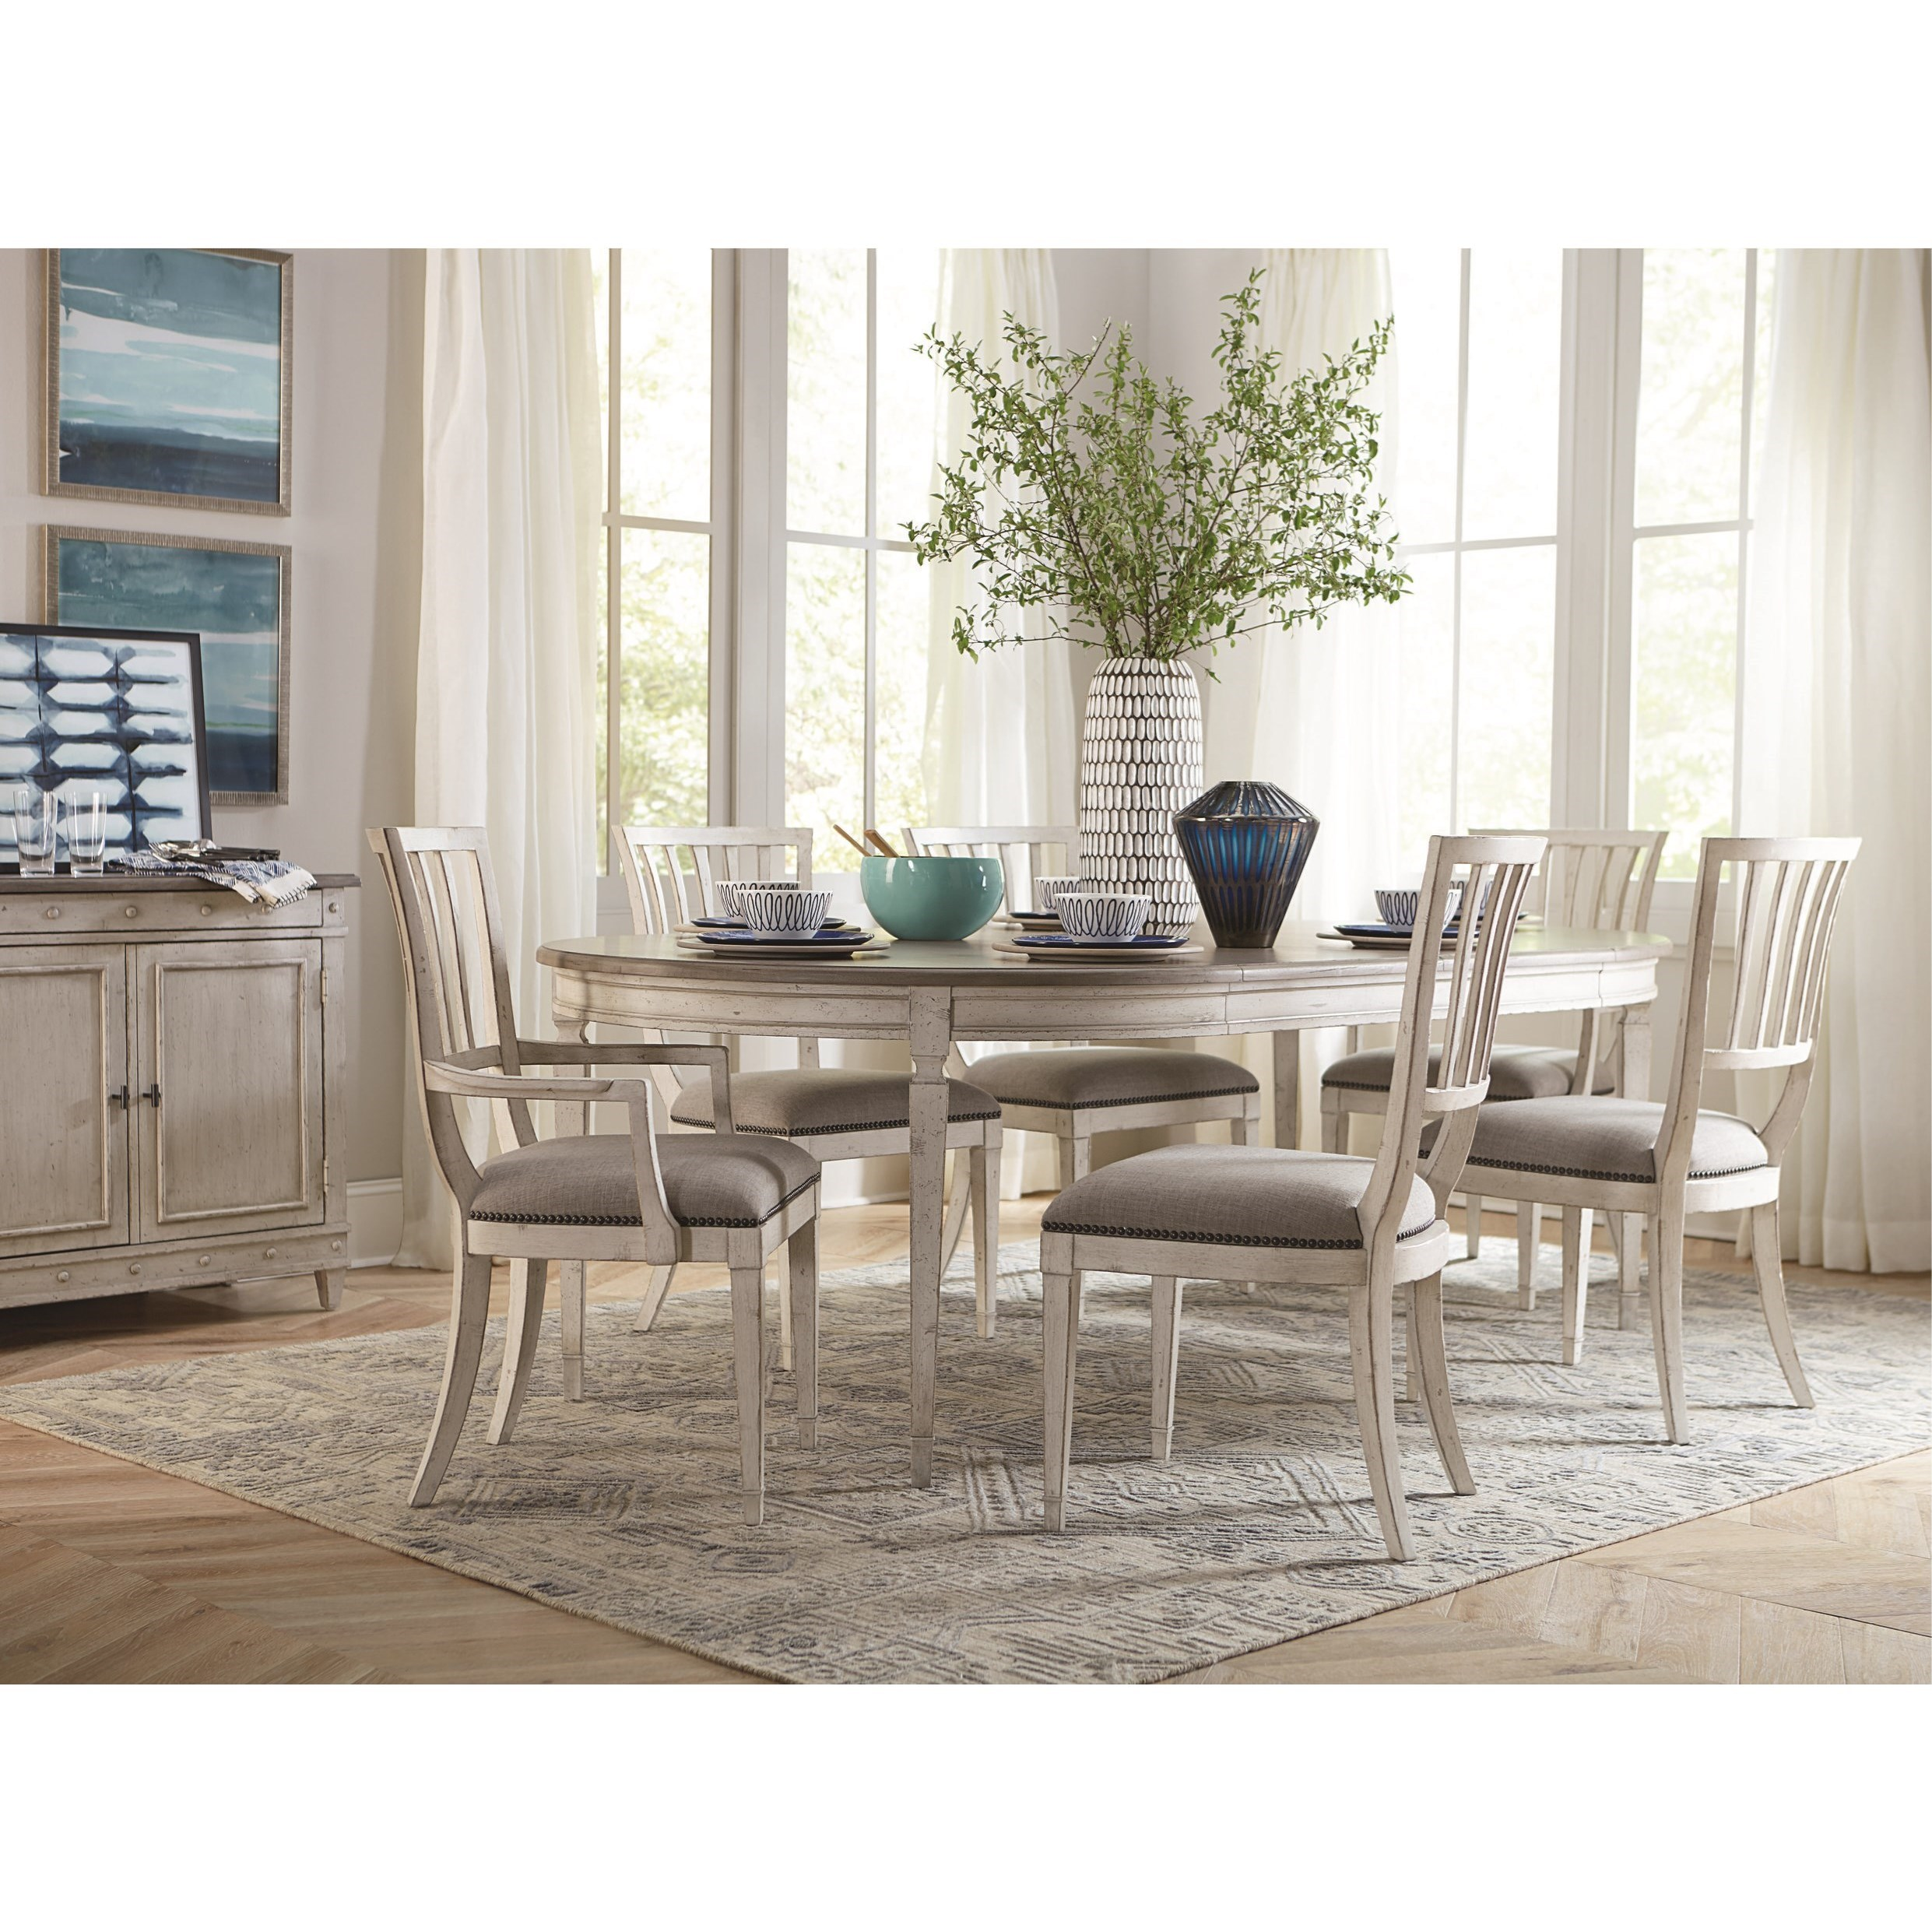 Bassett Dining Room Set: Bassett Bella Cottage 7 Piece Dining Table And Chair Set